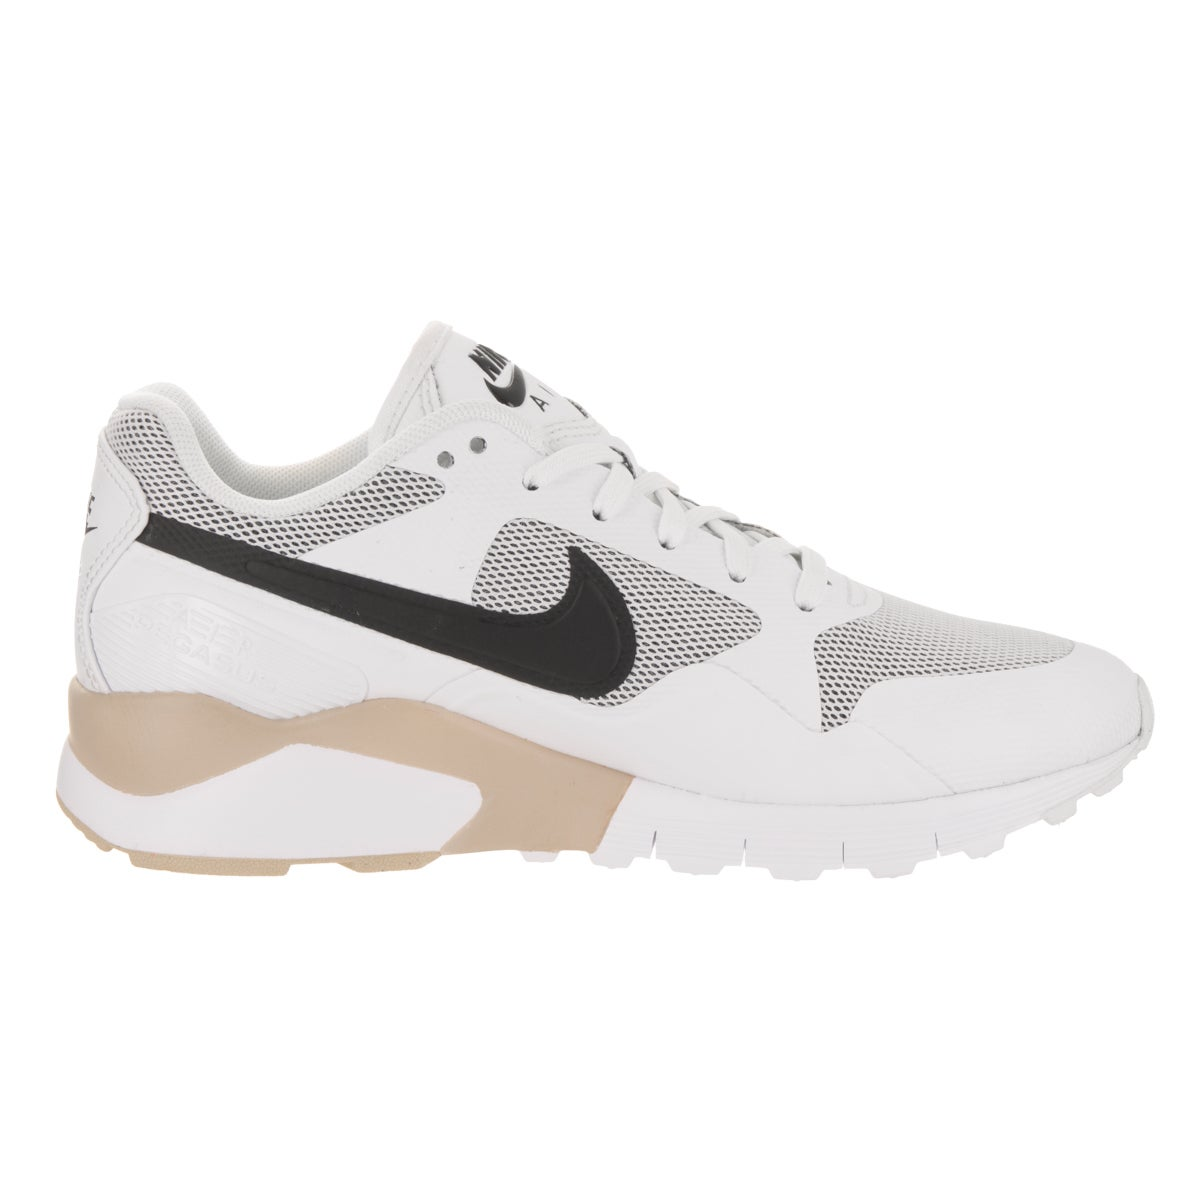 Shop Nike Women s Air Pegasus 92 16 Running Shoes - Free Shipping Today -  Overstock - 14823131 6f961d51d